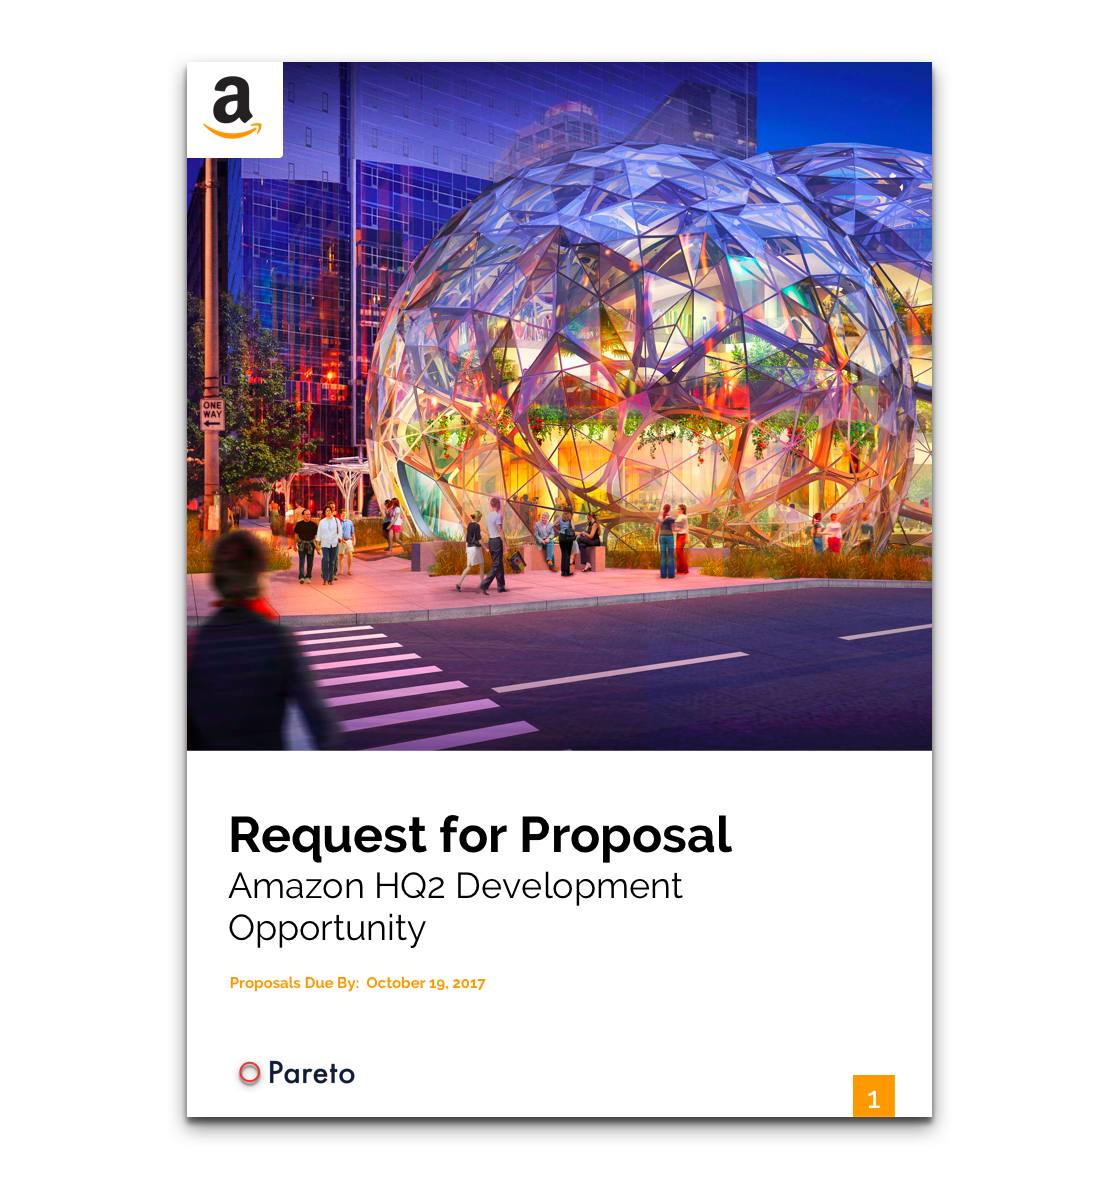 Amazon HQ2 Request for Proposal -